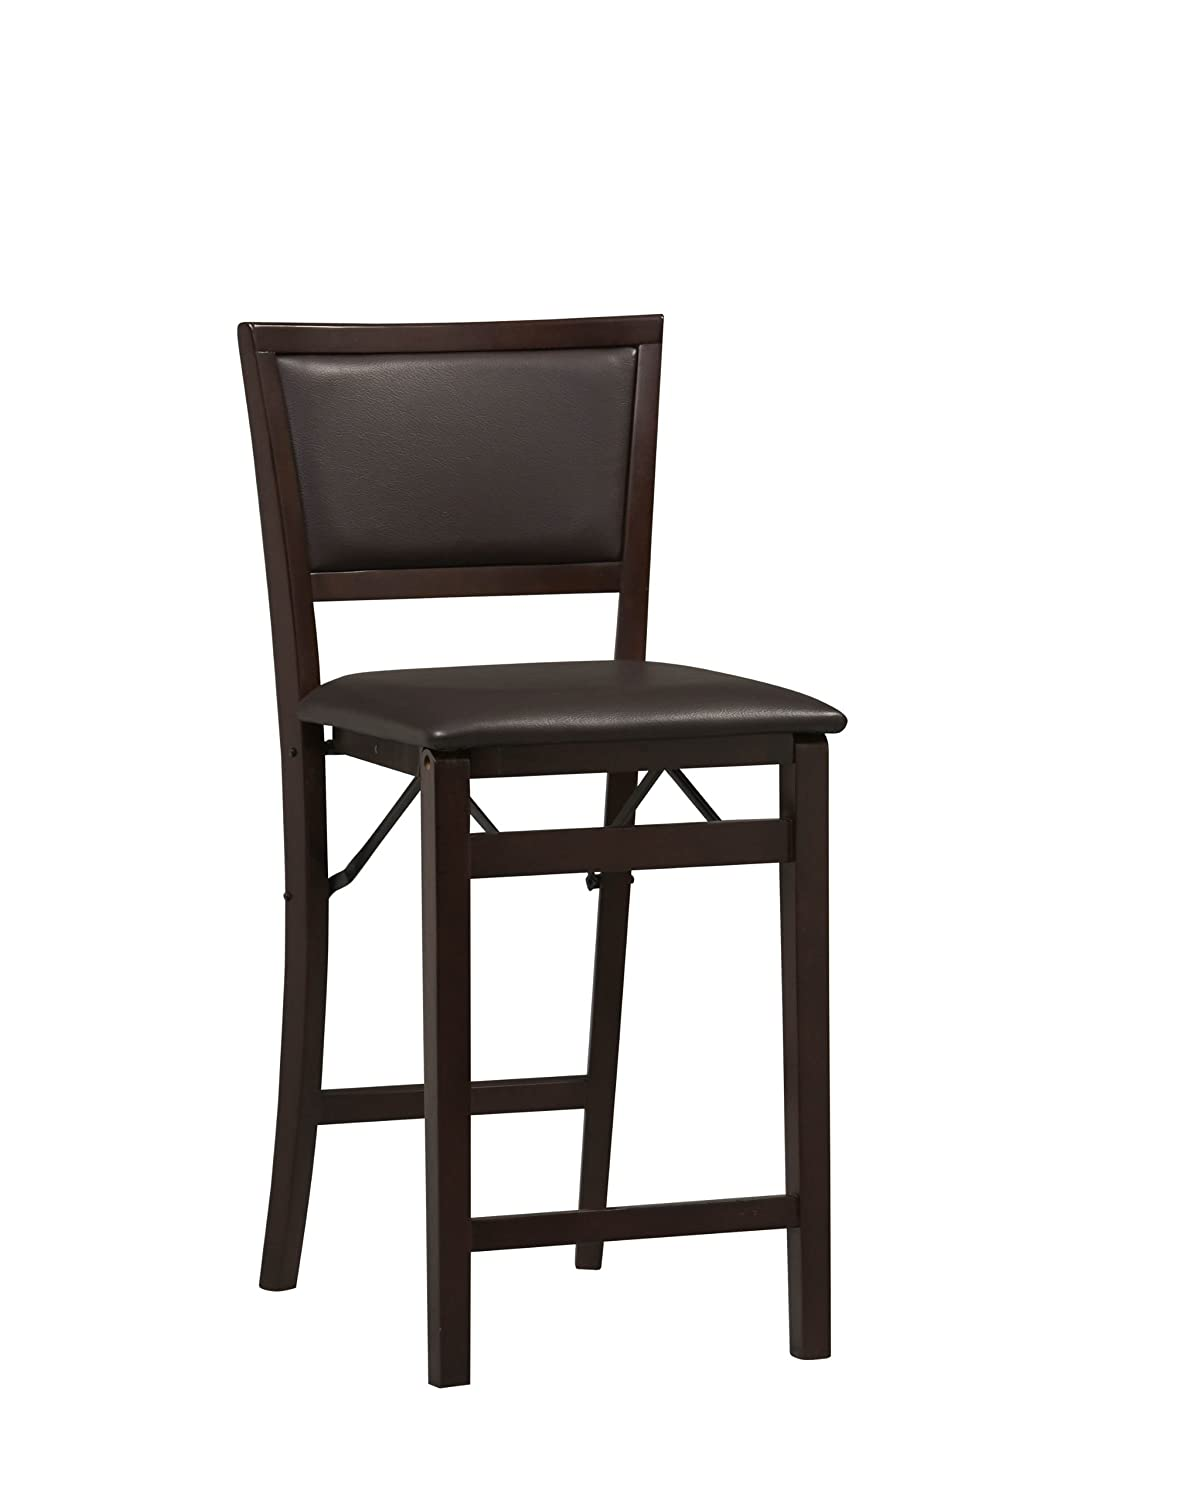 Amazon.com Linon Home Decor Keira Pad Back Folding Counter Stool 24-Inch Kitchen u0026 Dining  sc 1 st  Amazon.com & Amazon.com: Linon Home Decor Keira Pad Back Folding Counter Stool ... islam-shia.org